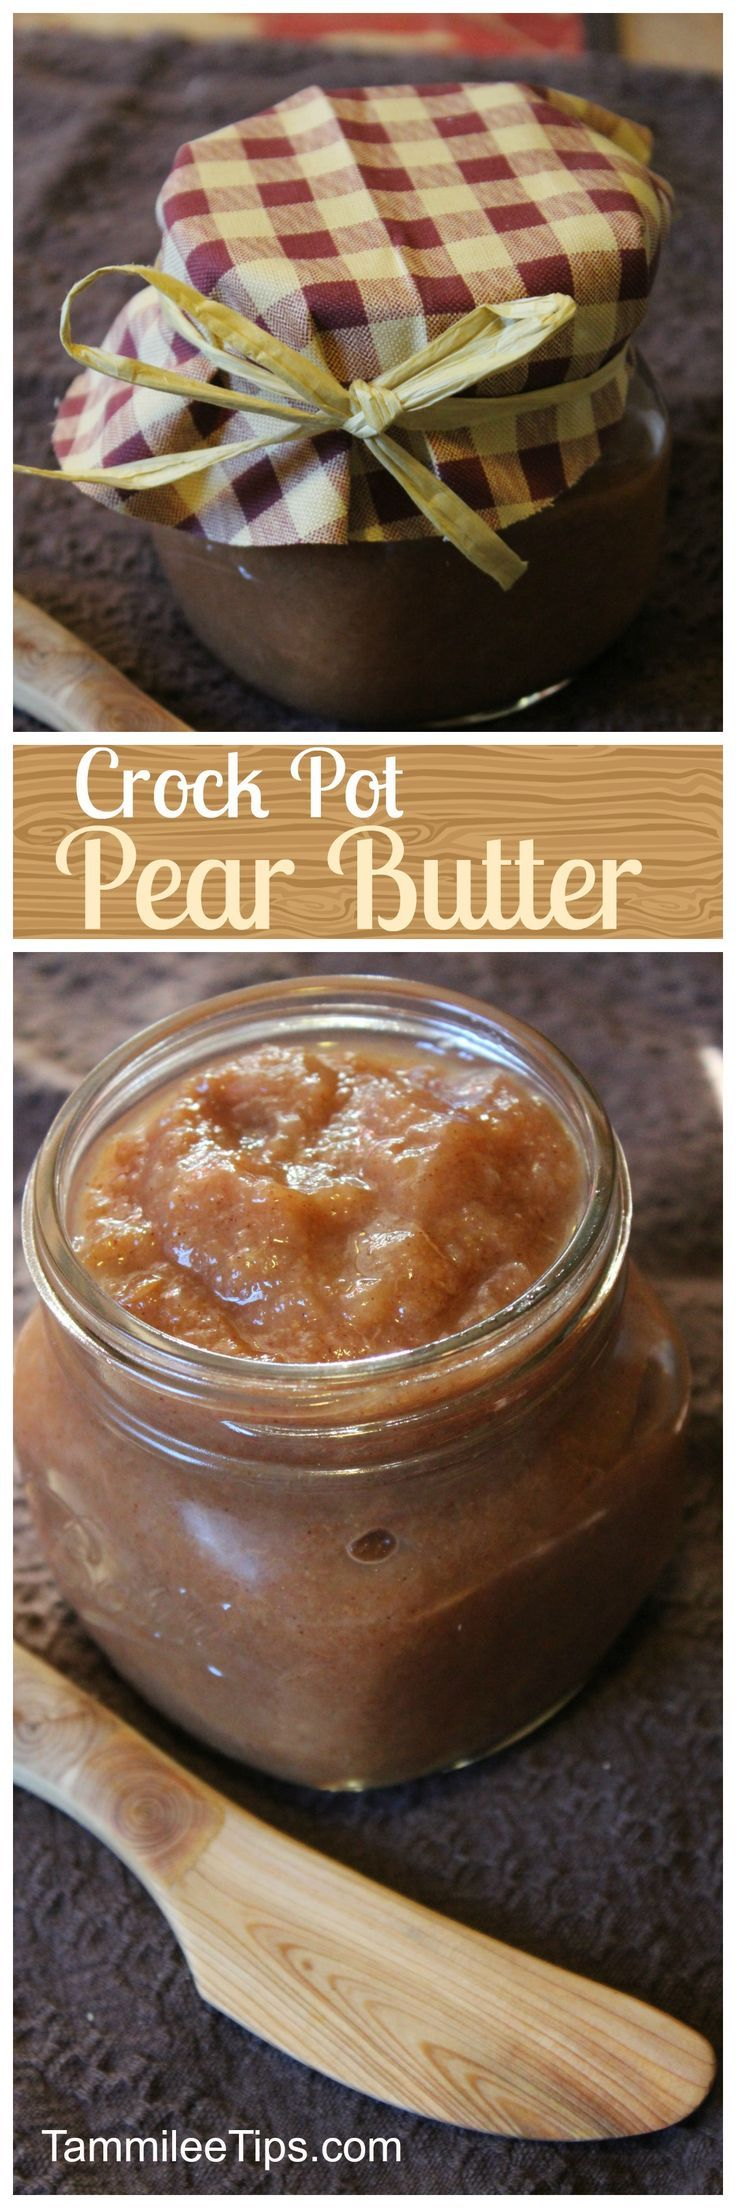 Super easy Crockpot Pear Butter recipe that is great for canning. This slow cooker recipe can easily be made into spiced pear butter. This is a crock pot recipe the entire family will love!